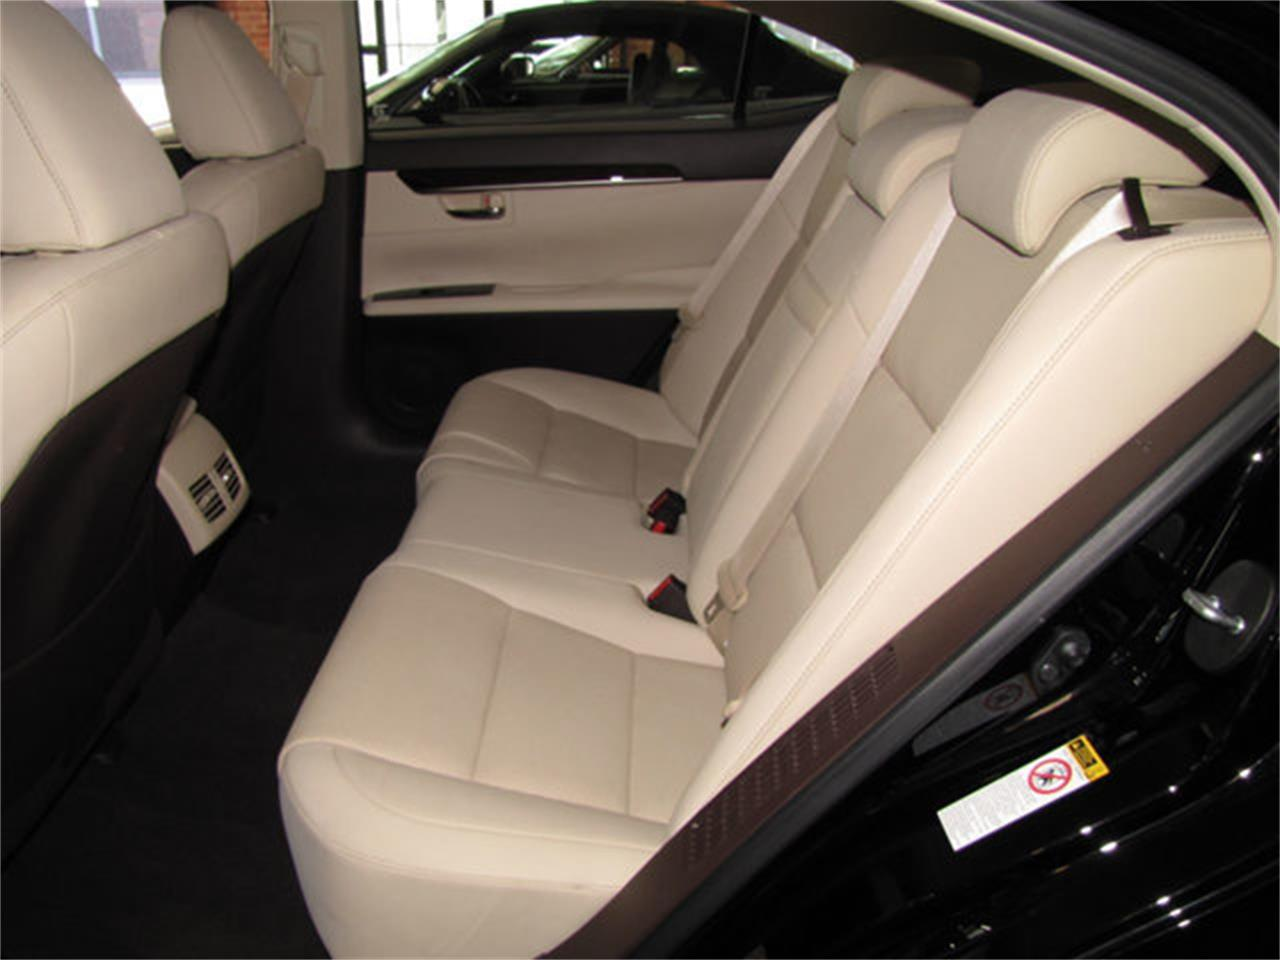 Wondrous 2016 Lexus Es300 For Sale In Hollywood Ca Classiccarsbay Com Gmtry Best Dining Table And Chair Ideas Images Gmtryco